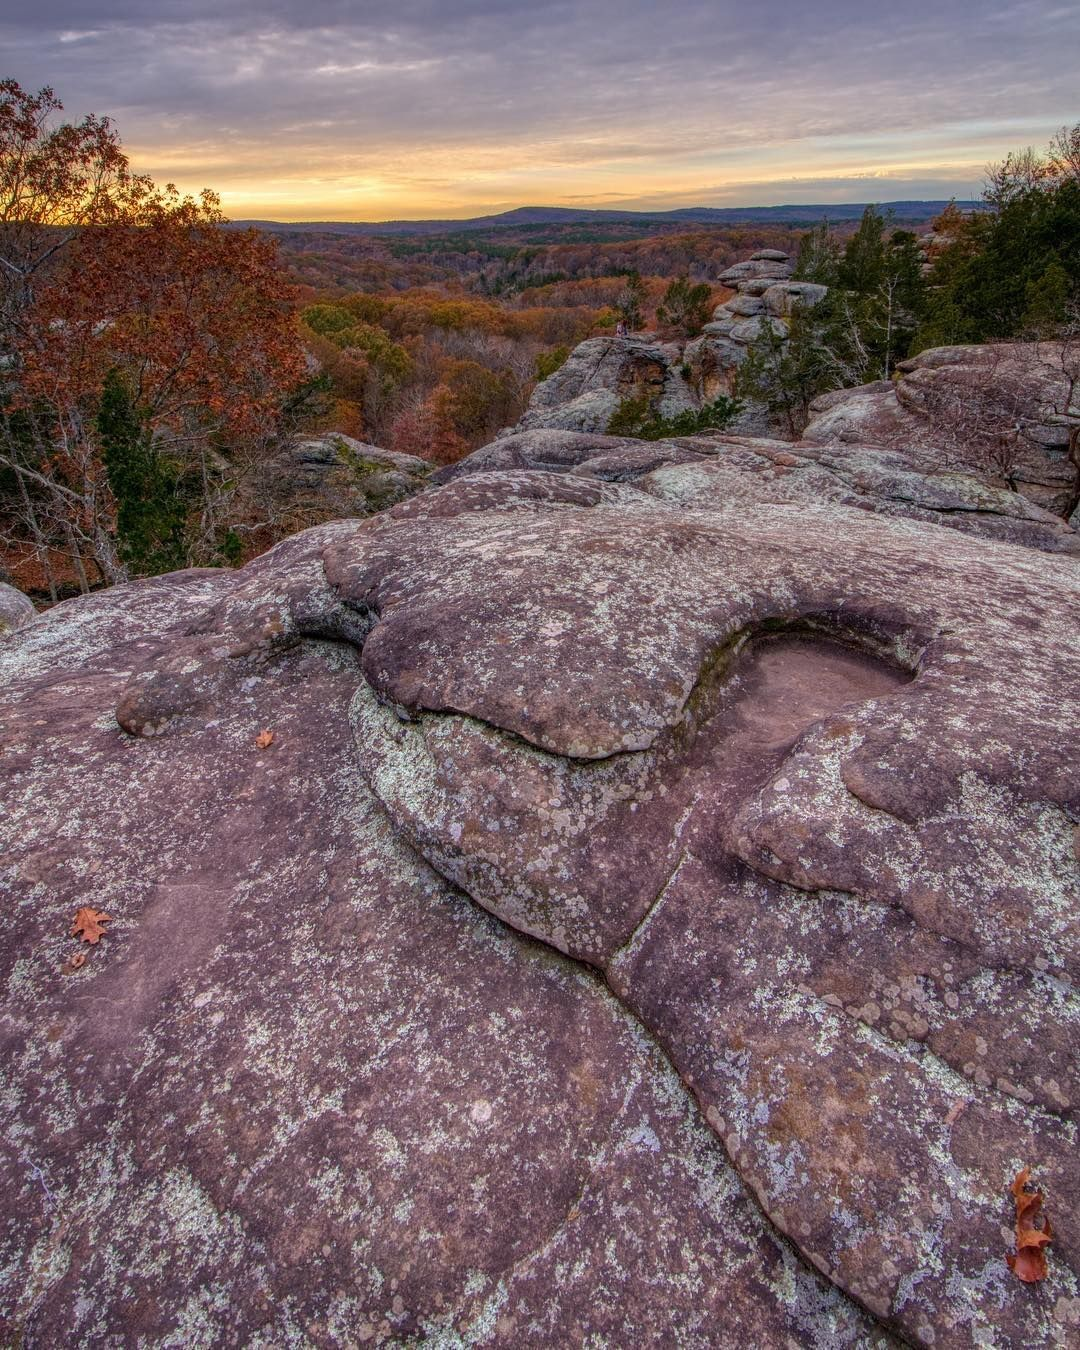 Garden of the Gods by @pics_by_skinner